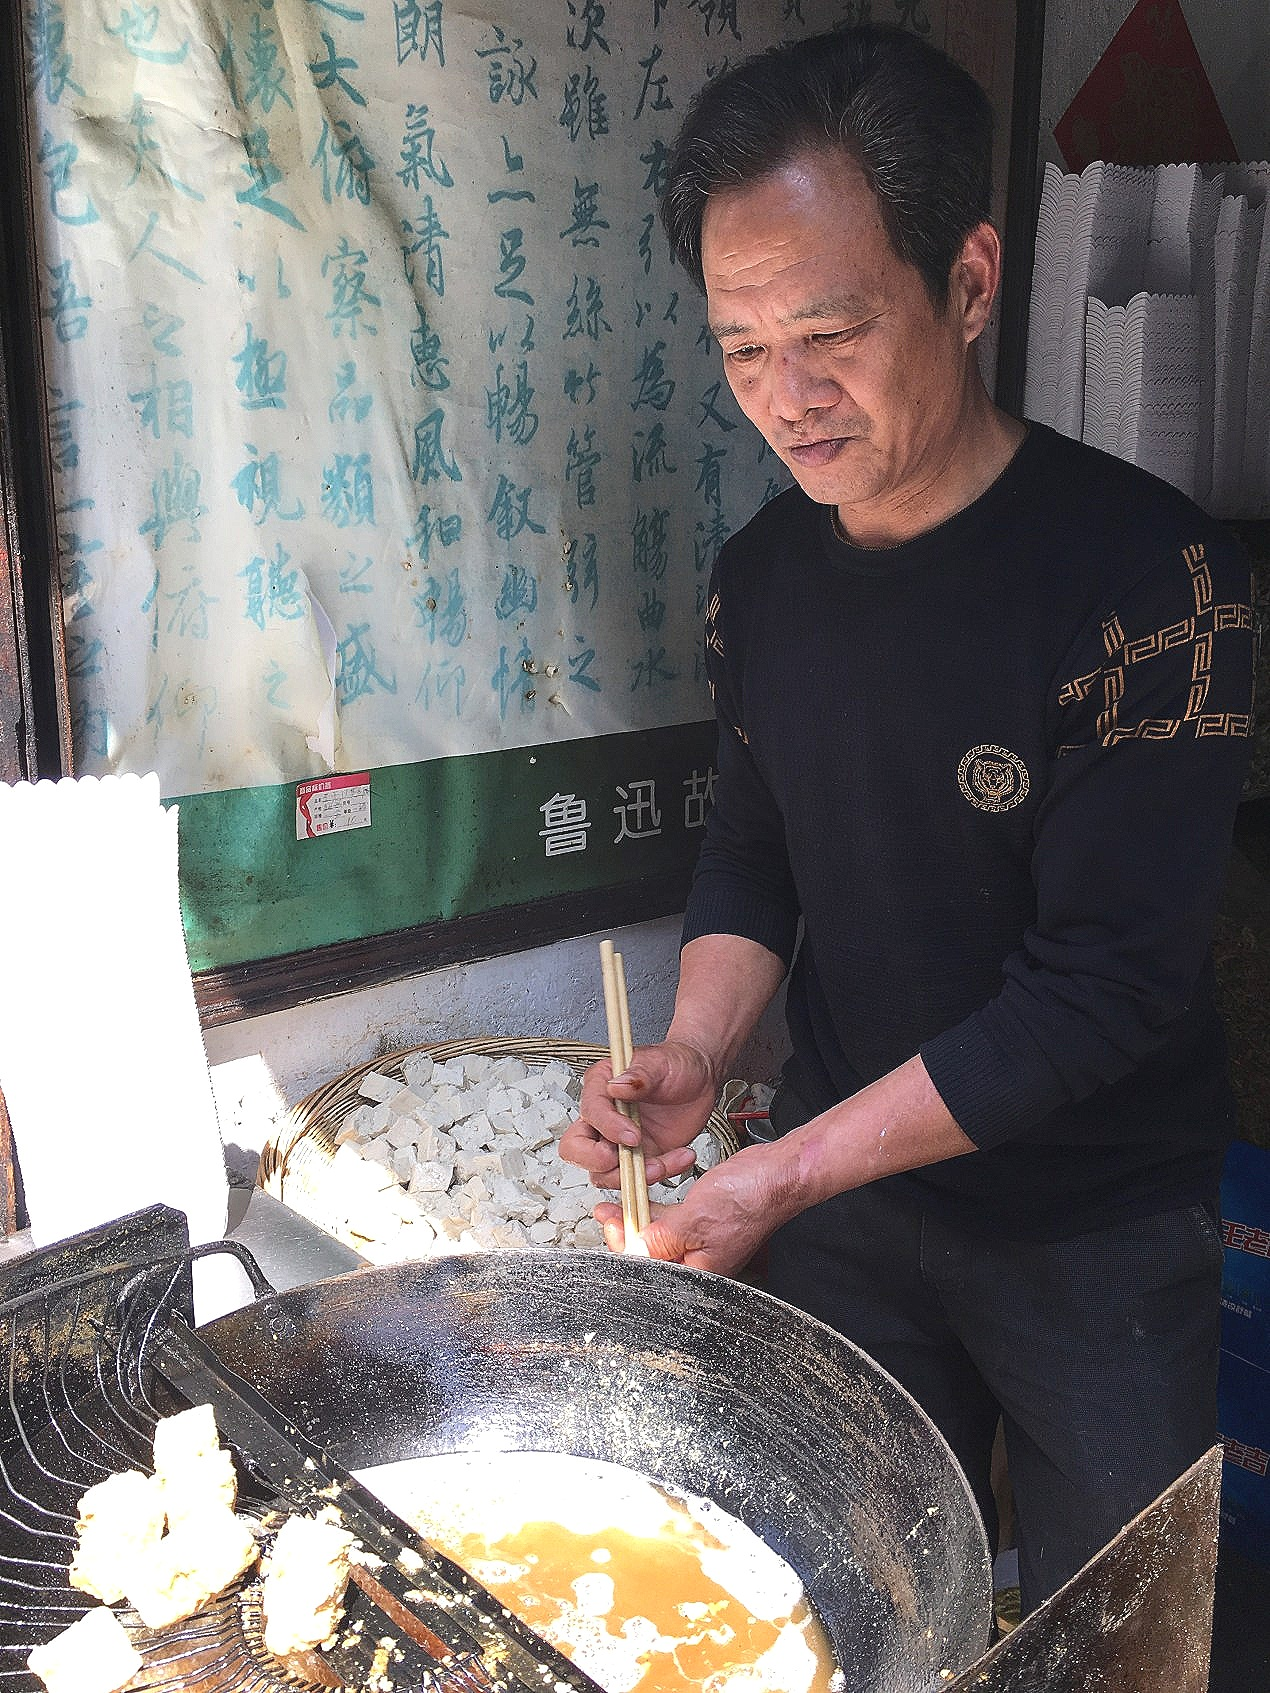 A Stink Over Fermented Tofu in Shaoxing